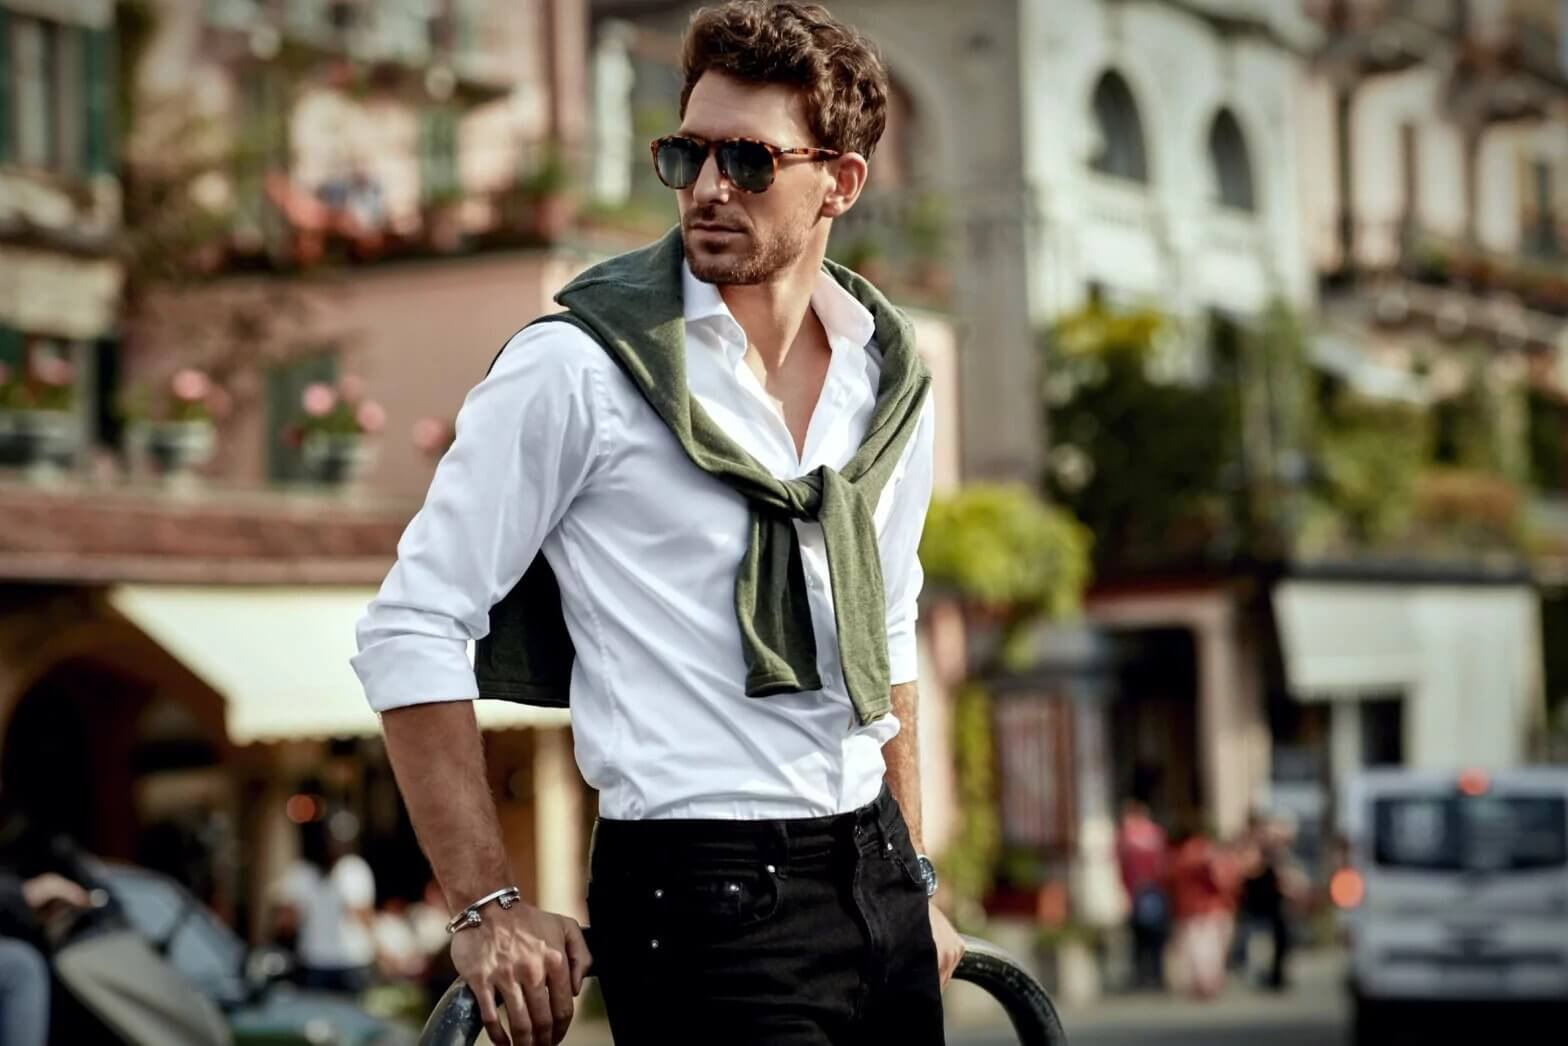 style-homme-chemise-blance